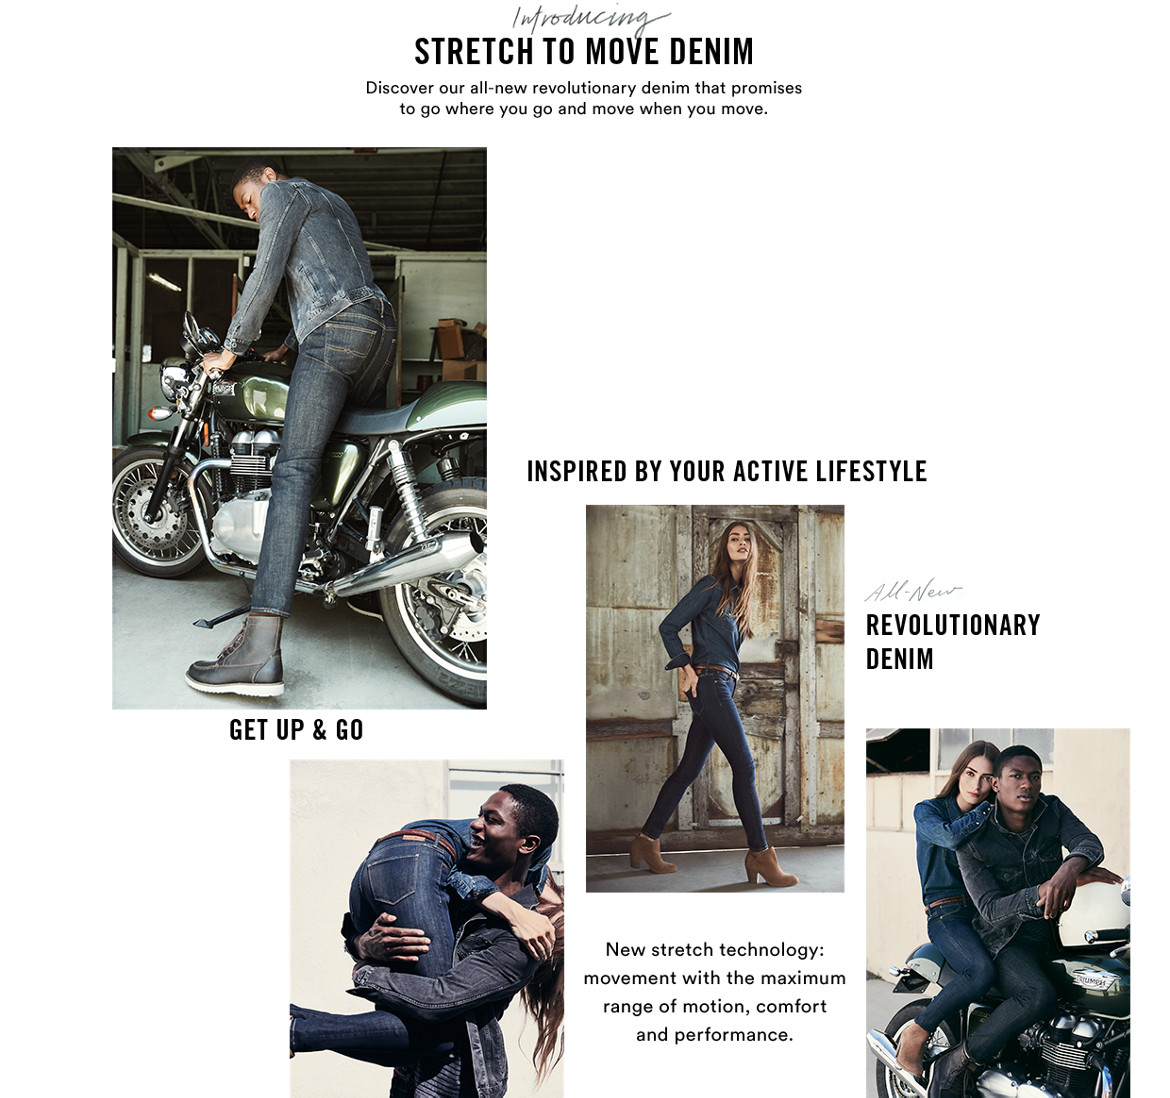 Stretch to move denim image